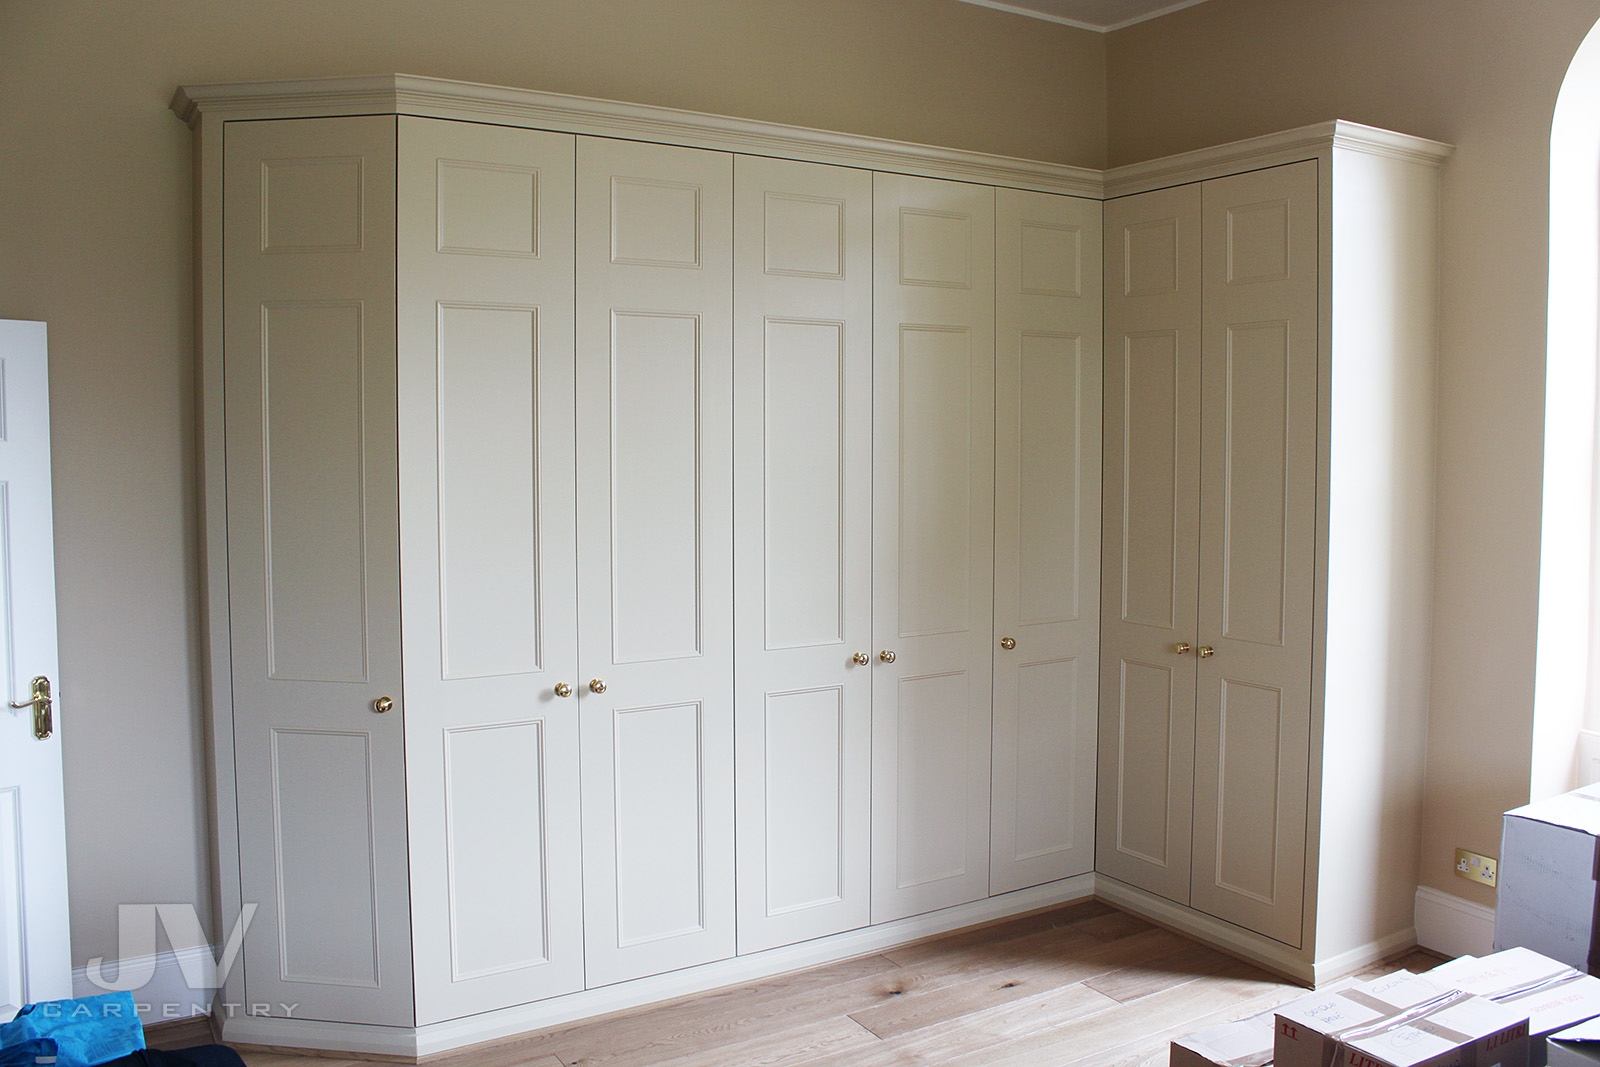 Fitted wardrobe an L-shaped